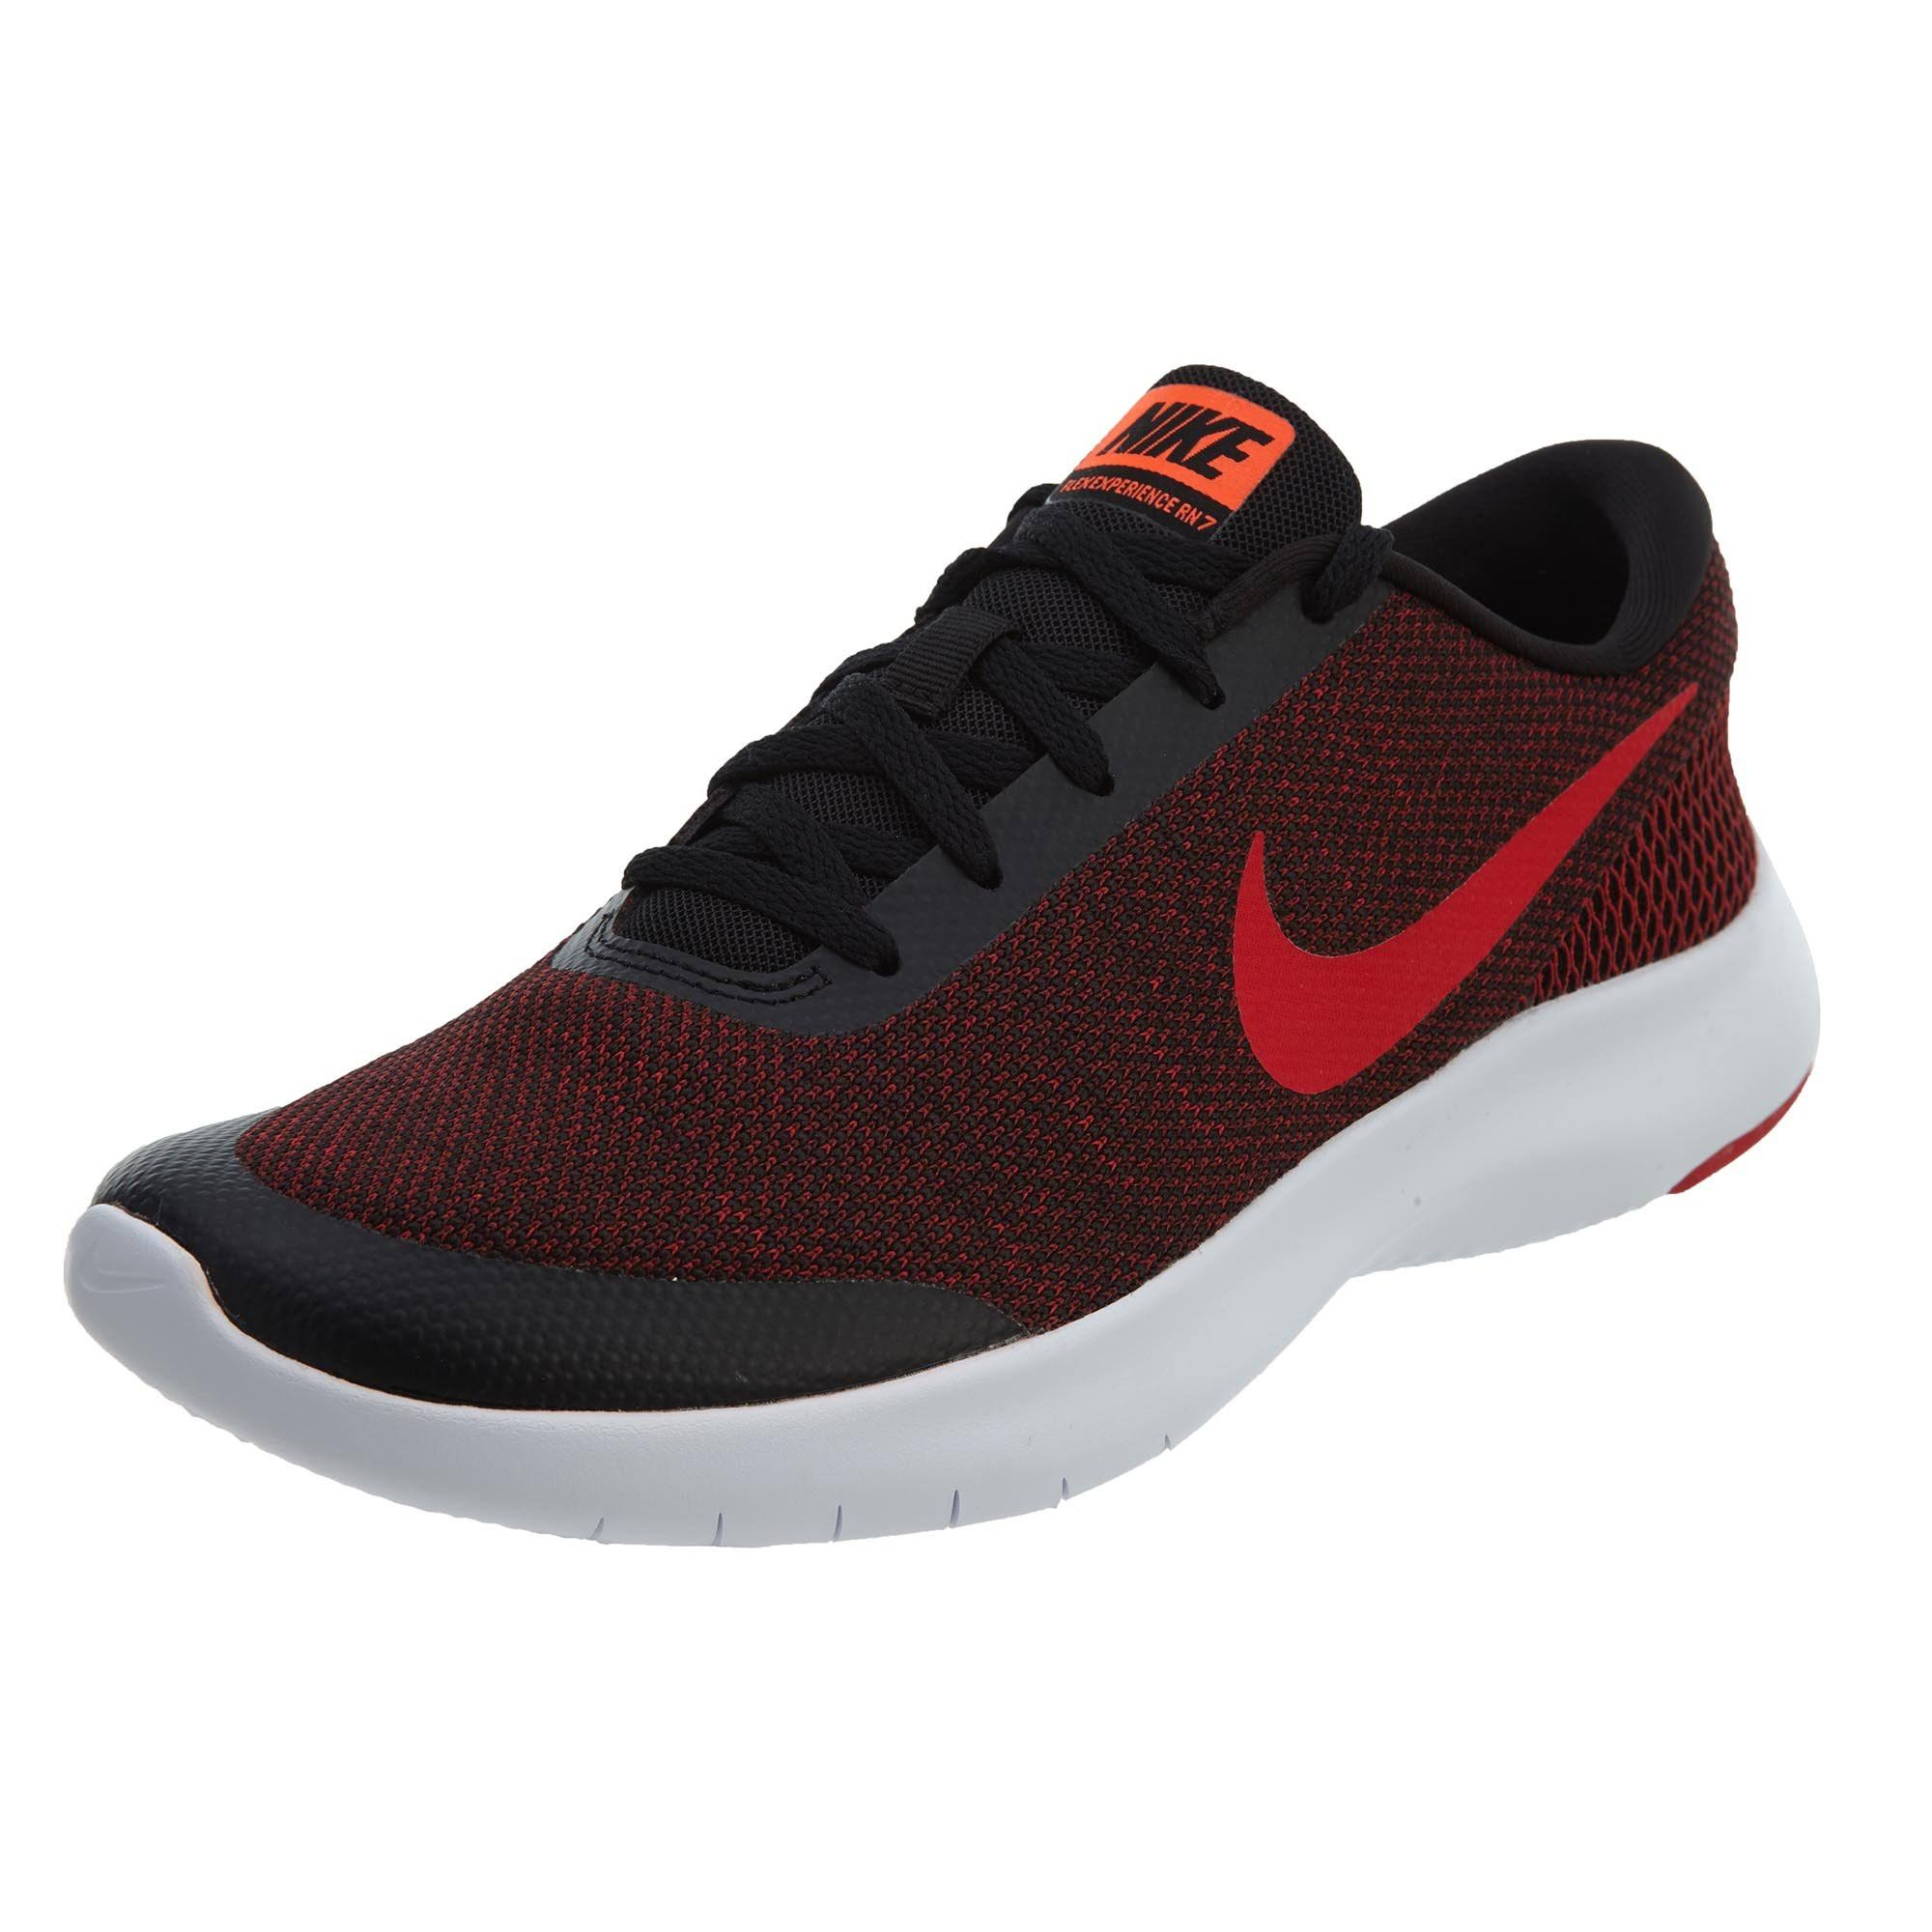 university Shoes Running Black Mens gym Flex 7 Sneakers Exp Nike Red Red Xxf8qTSwf